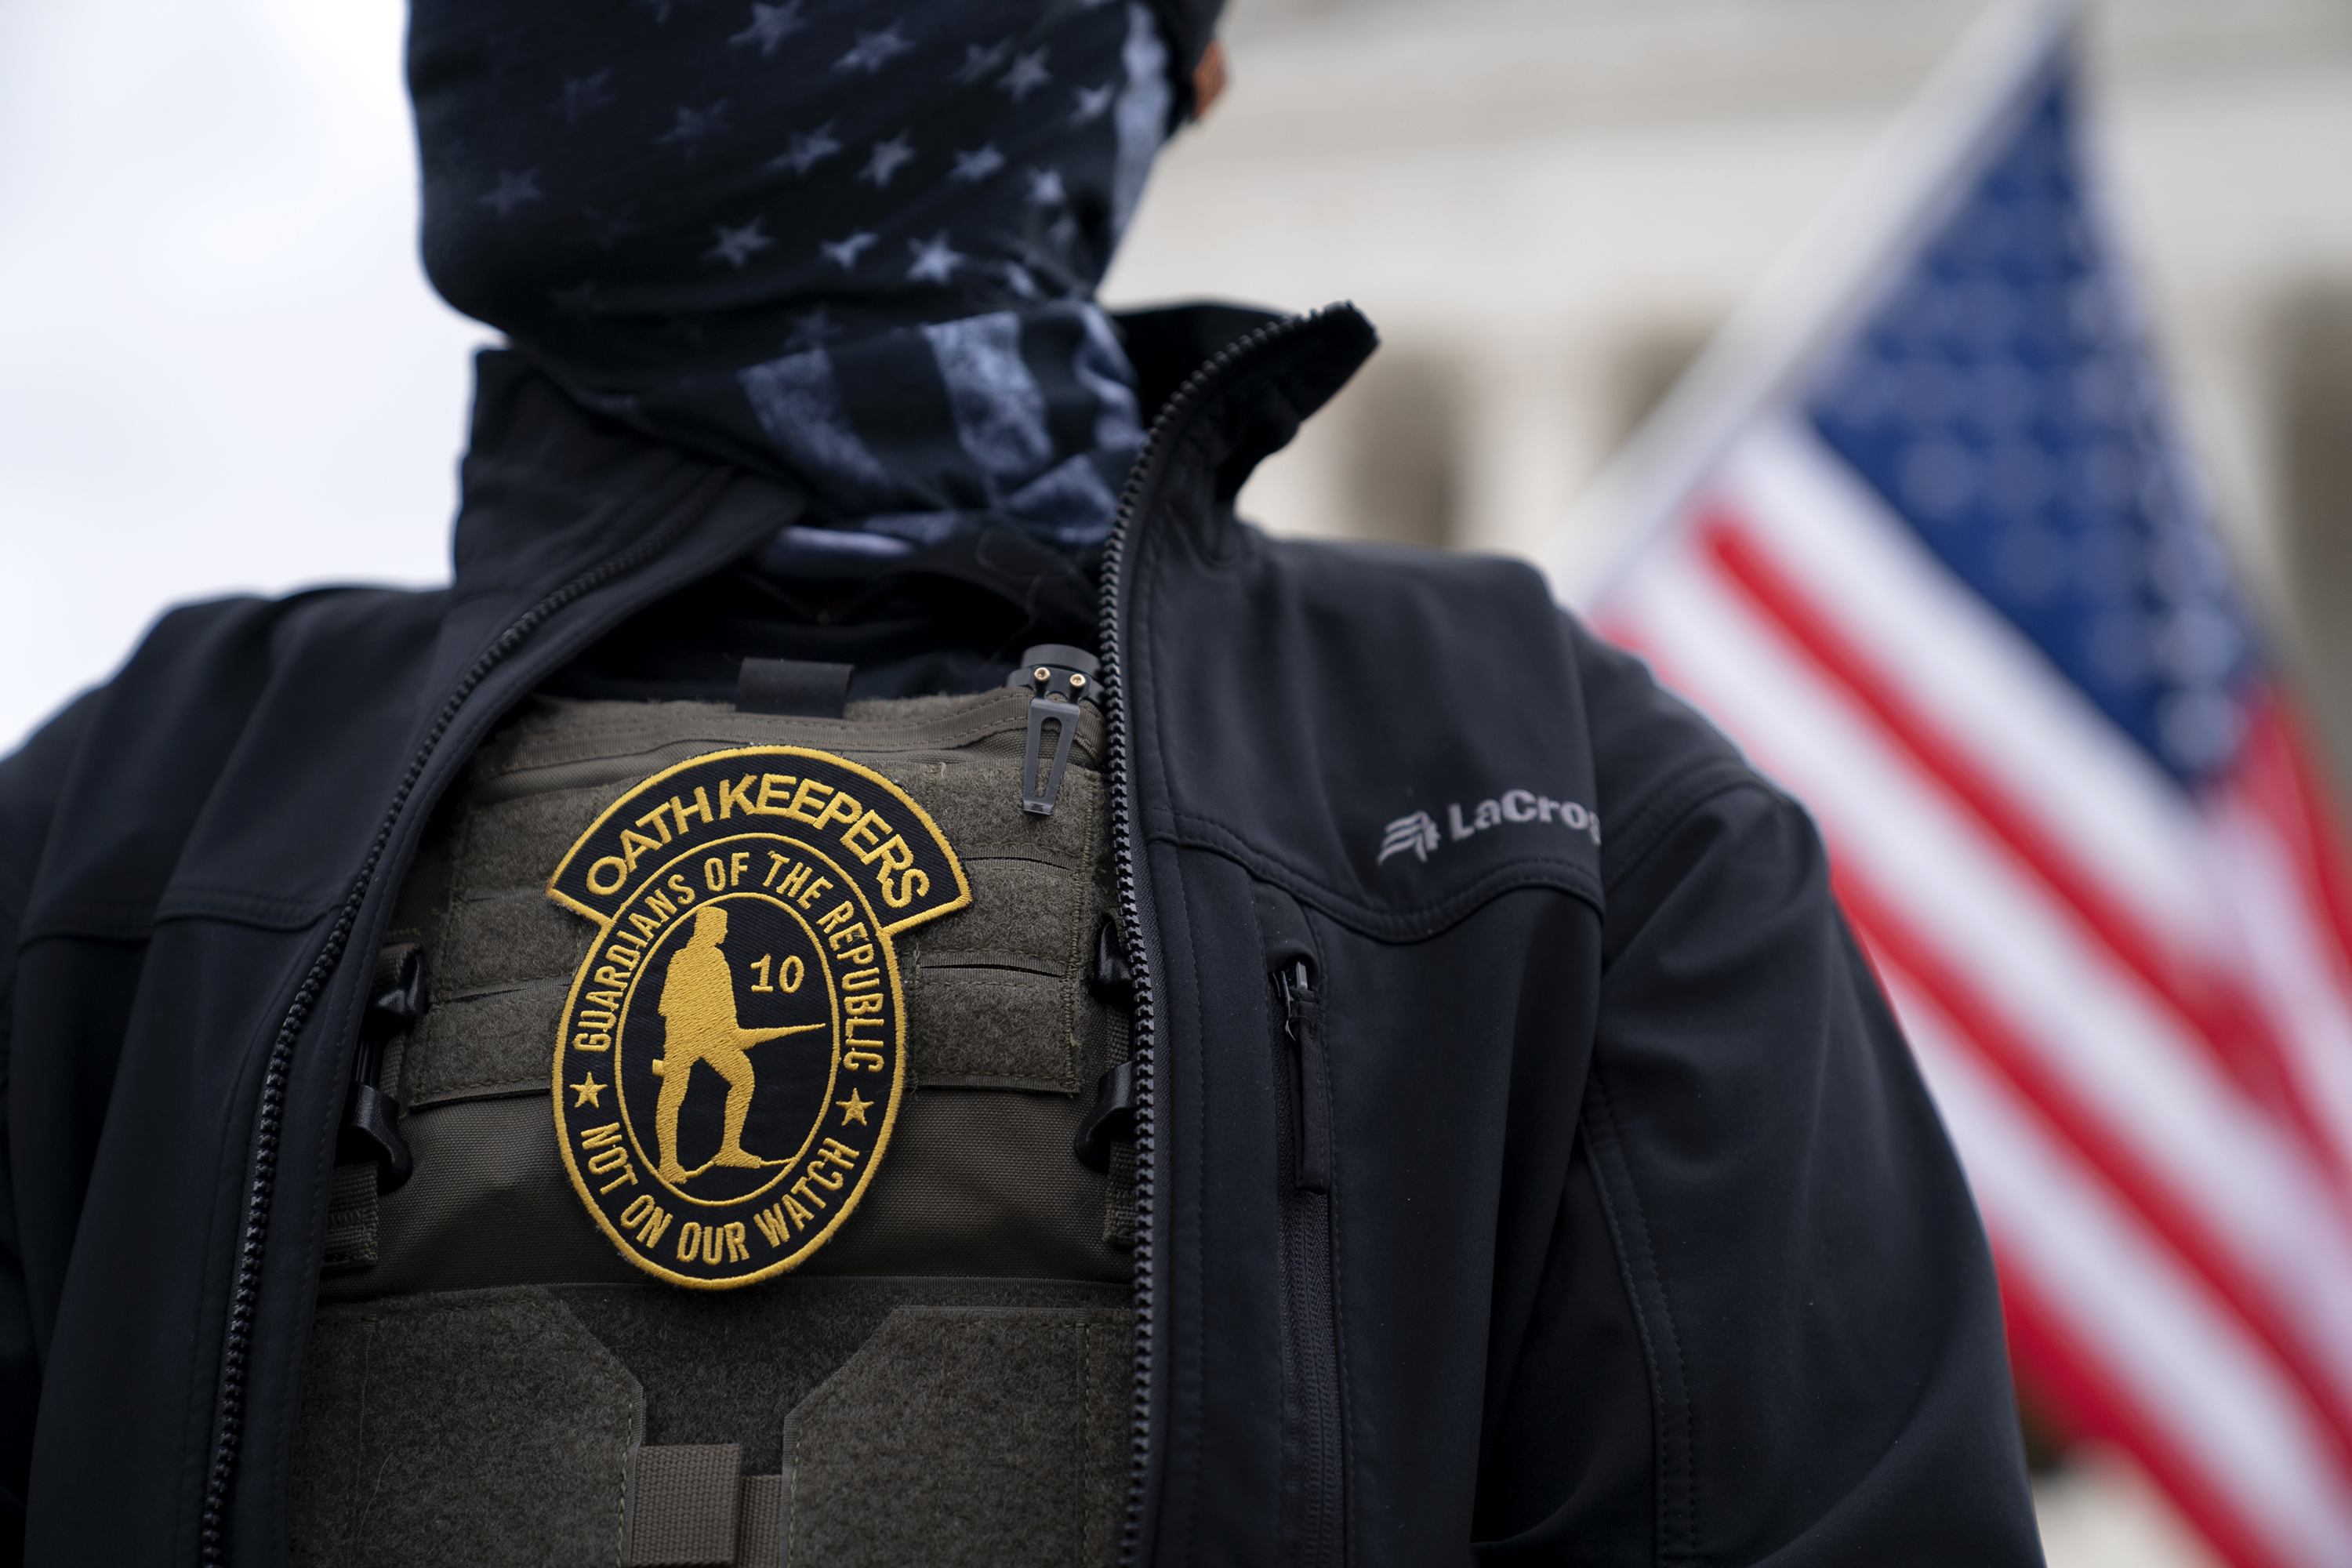 A demonstrator wears an OathKeepers anti-government organization badge on a protective vest during a protest outside the Supreme Court in Washington, D.C., U.S., on Tuesday, Jan. 5, 2021. Republican lawmakers in Washington are fracturing over President Trump's futile effort to persuade Congress to overturn his re-election defeat, as his allies spar with conservatives who say the Constitution doesn't give them the power to override voters. Photographer: Stefani Reynolds/Bloomberg via Getty Images